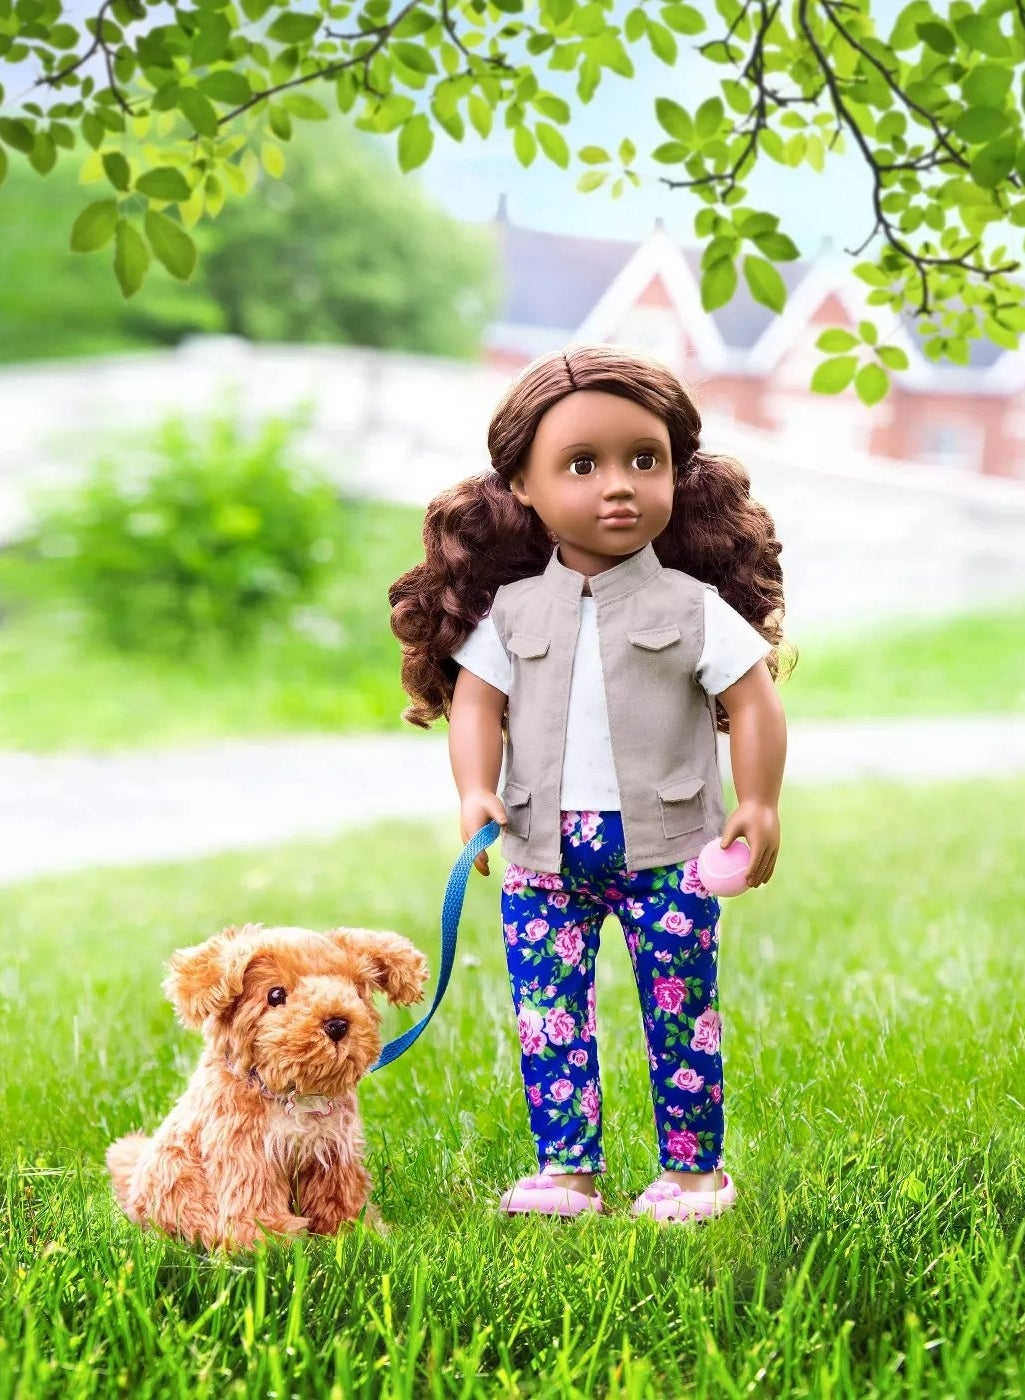 The doll with a tennis ball and her dog on a leash